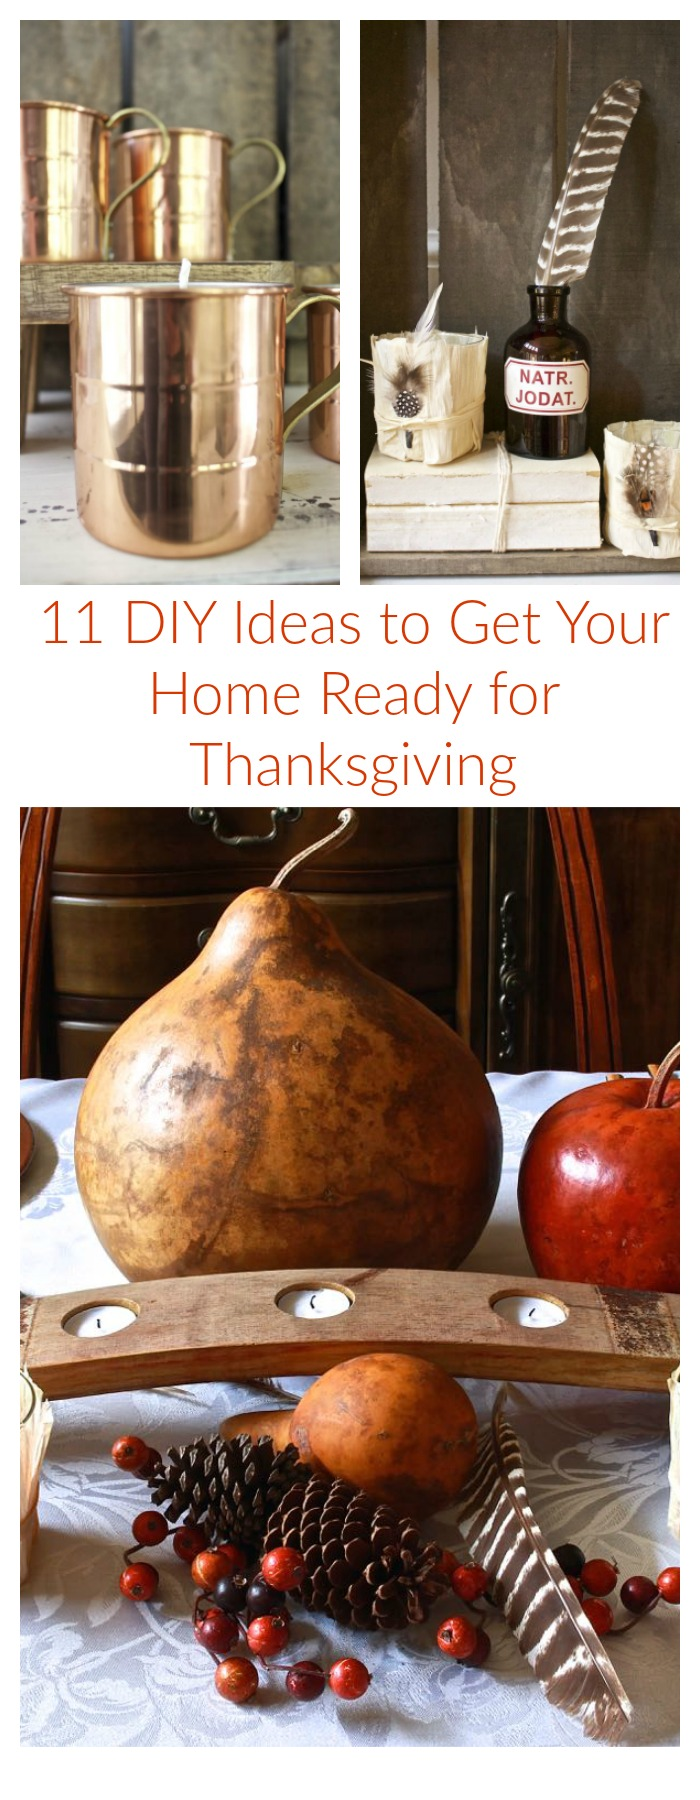 11 DIY Ideas to get your home ready for thanksgiving